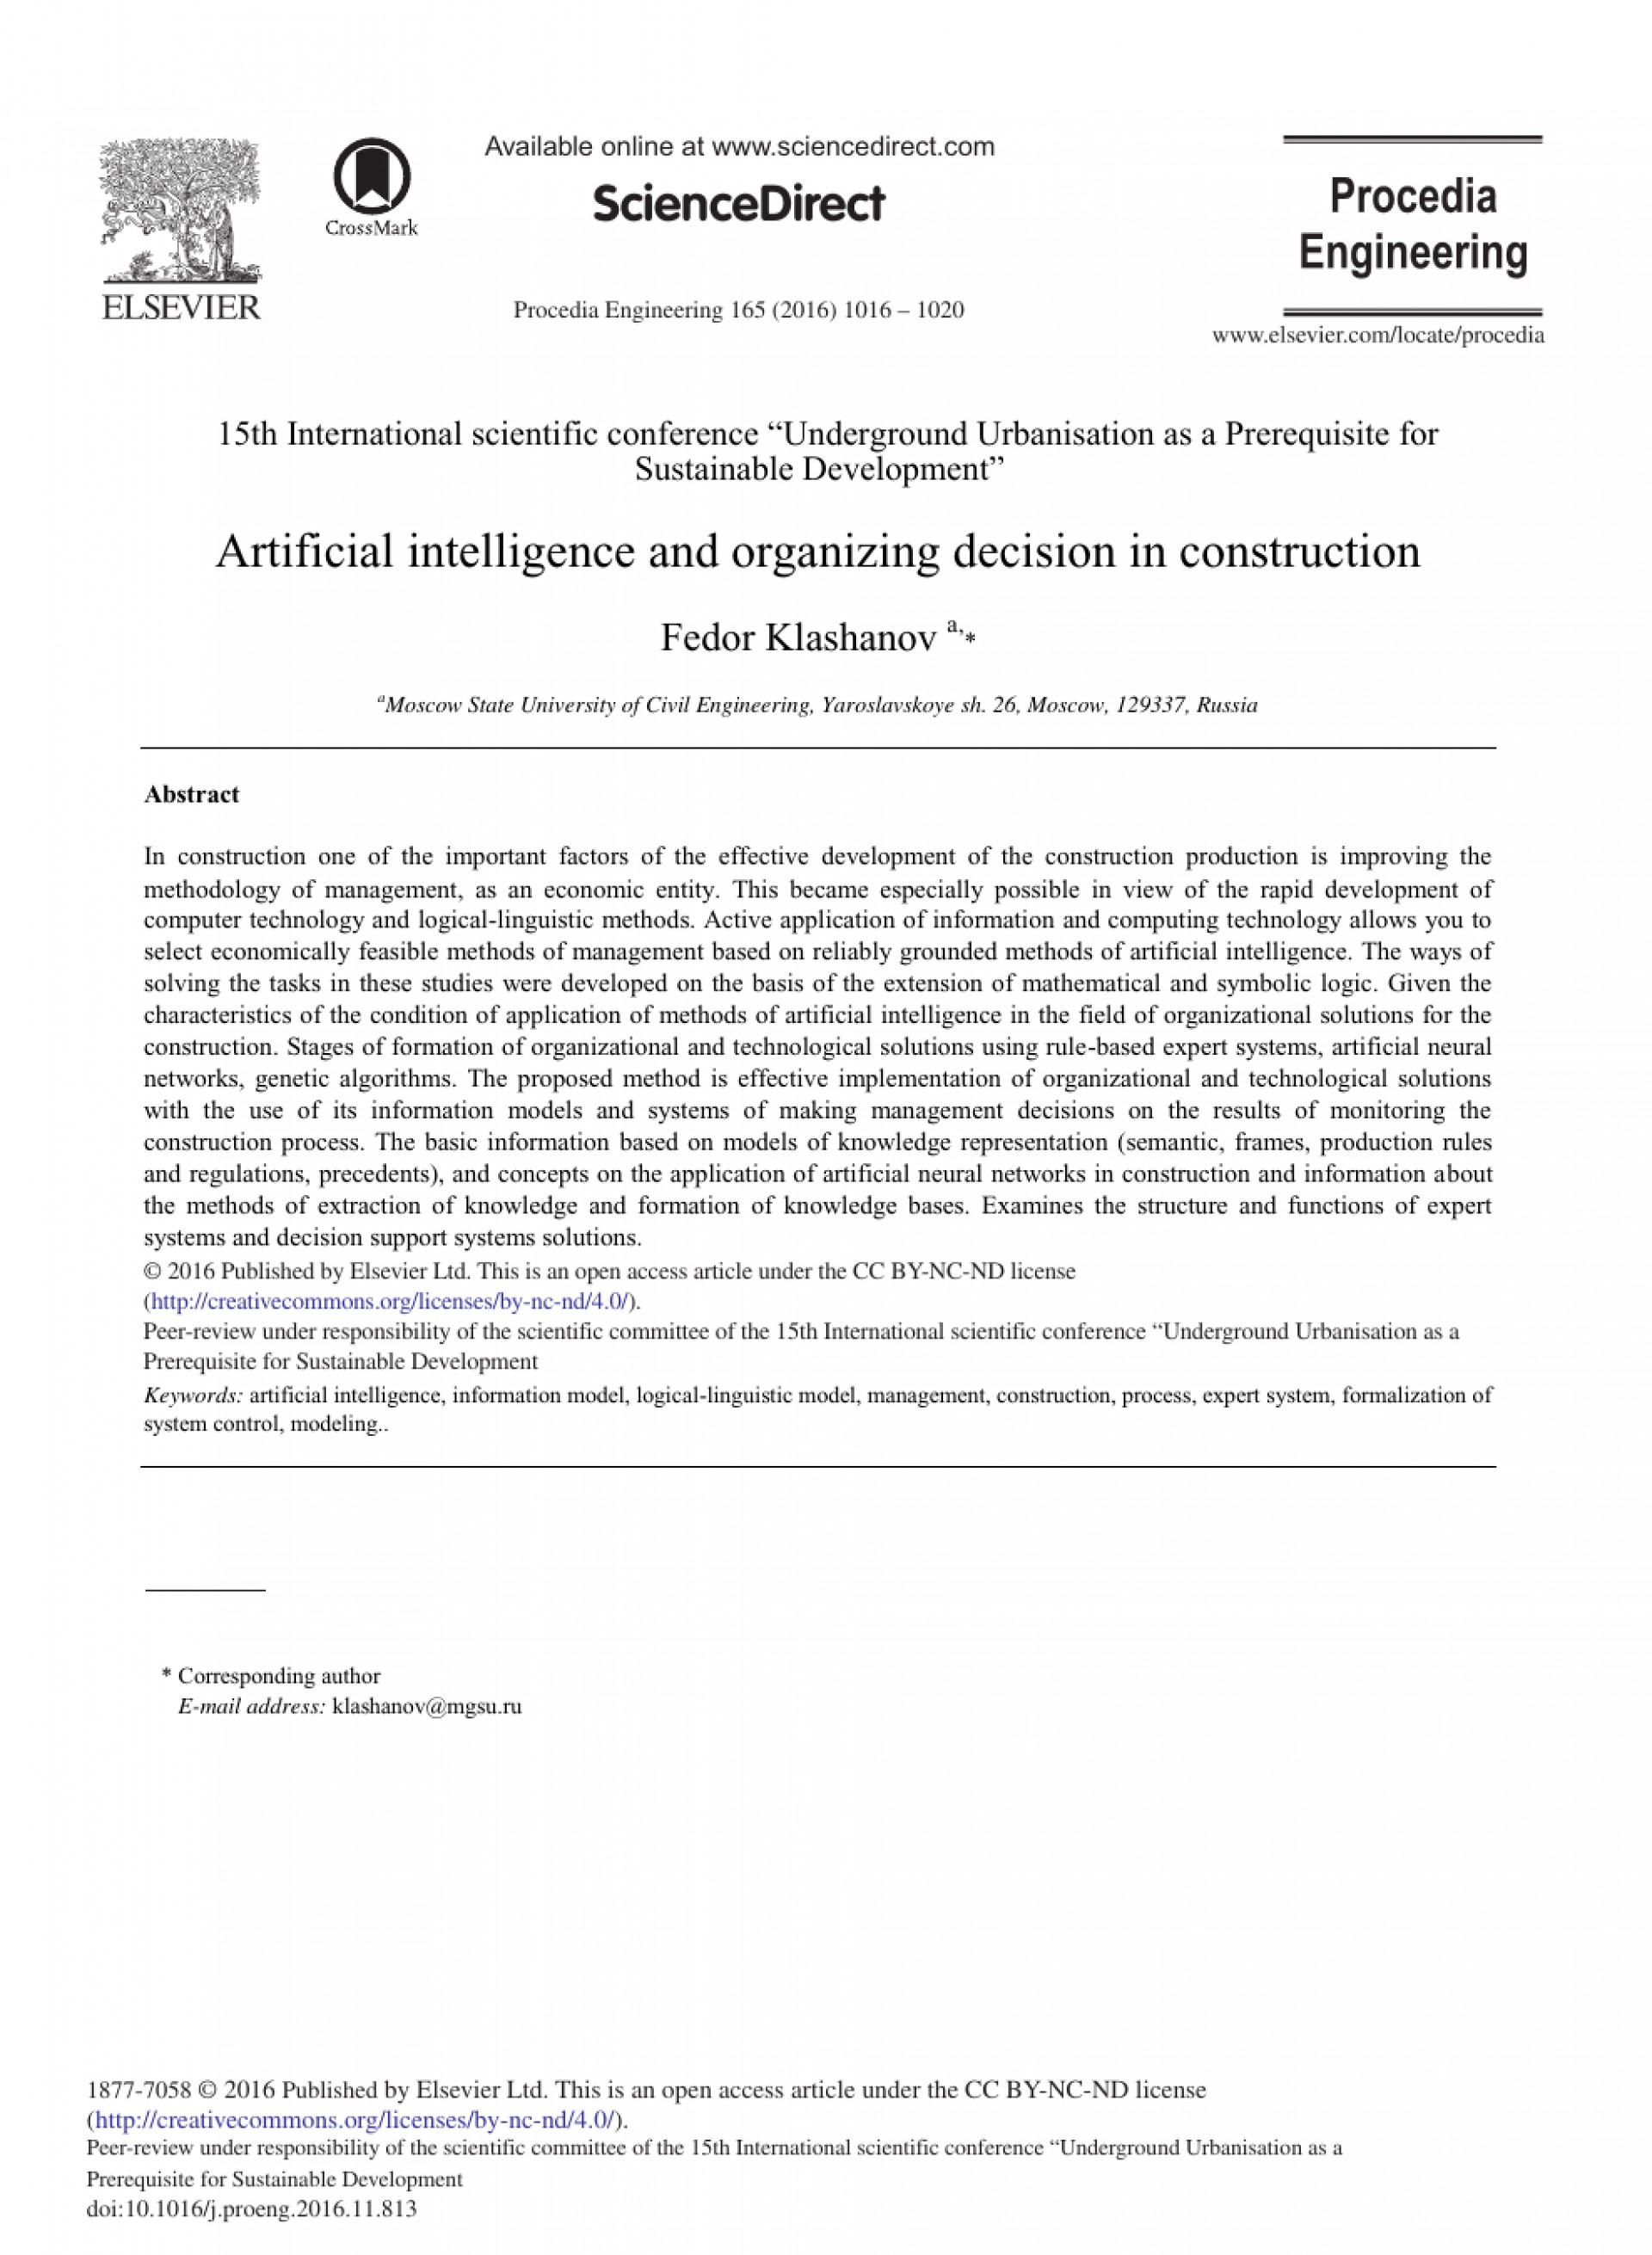 005 Artificial Intelligence Research Paper Phenomenal 2017 Latest On Pdf 1920